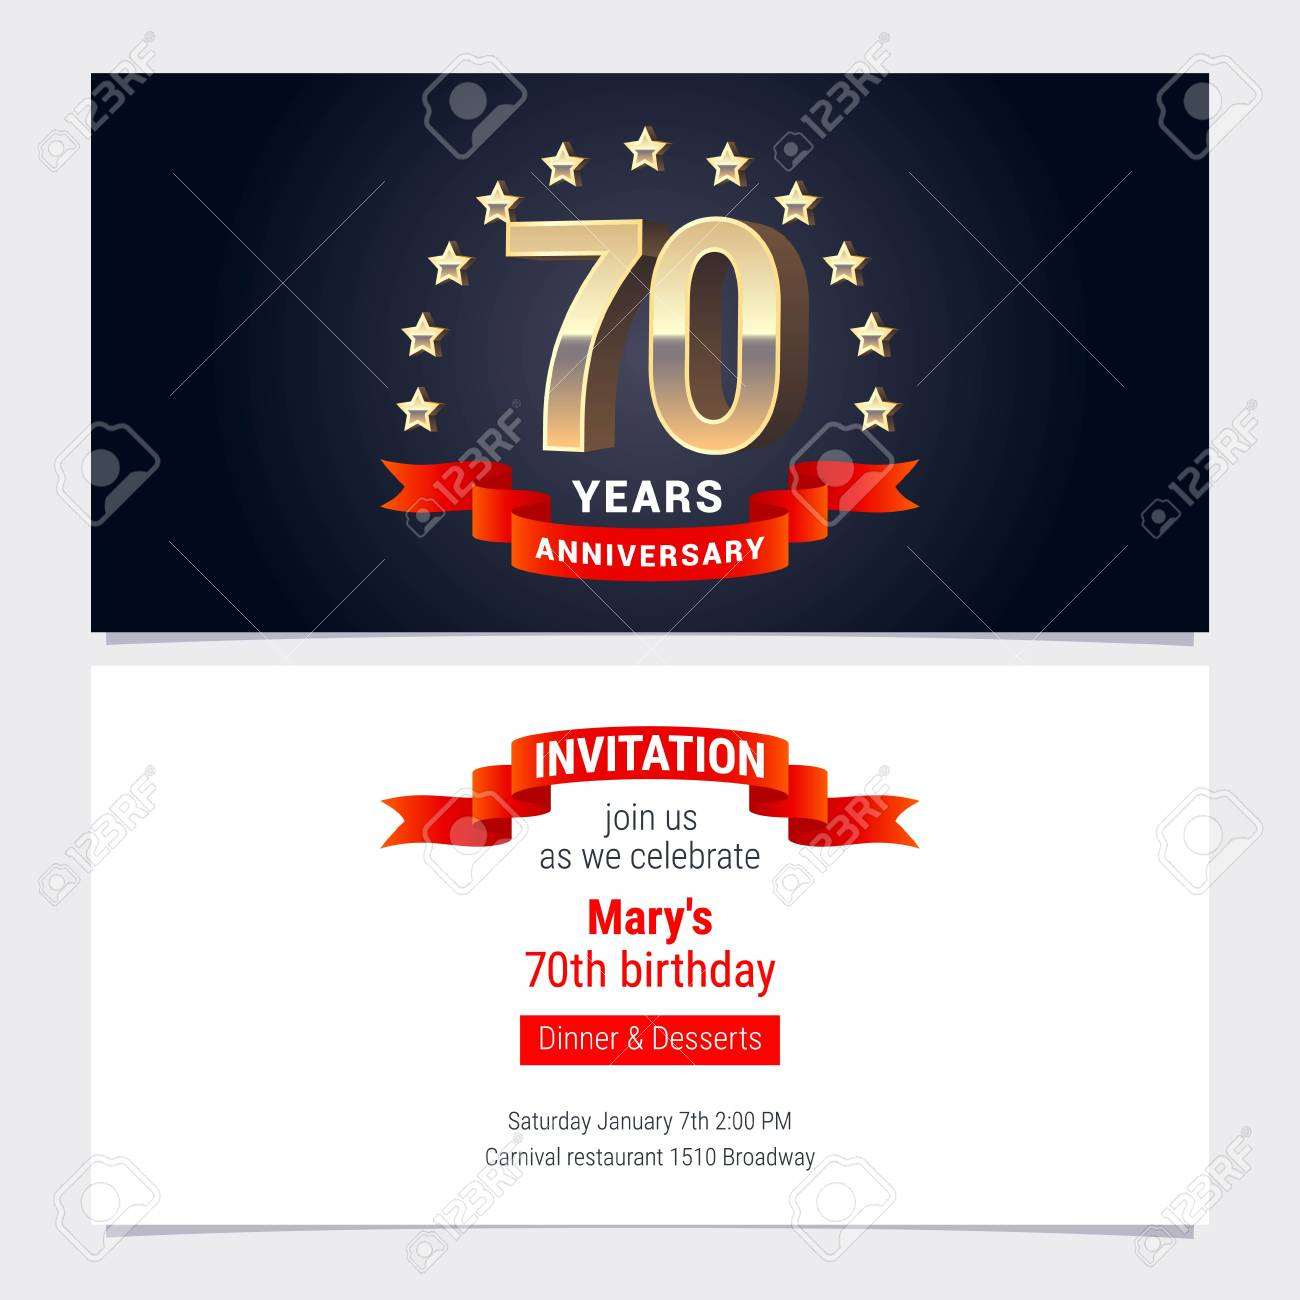 70 Years Anniversary Invitation To Celebration Vector Illustration ...